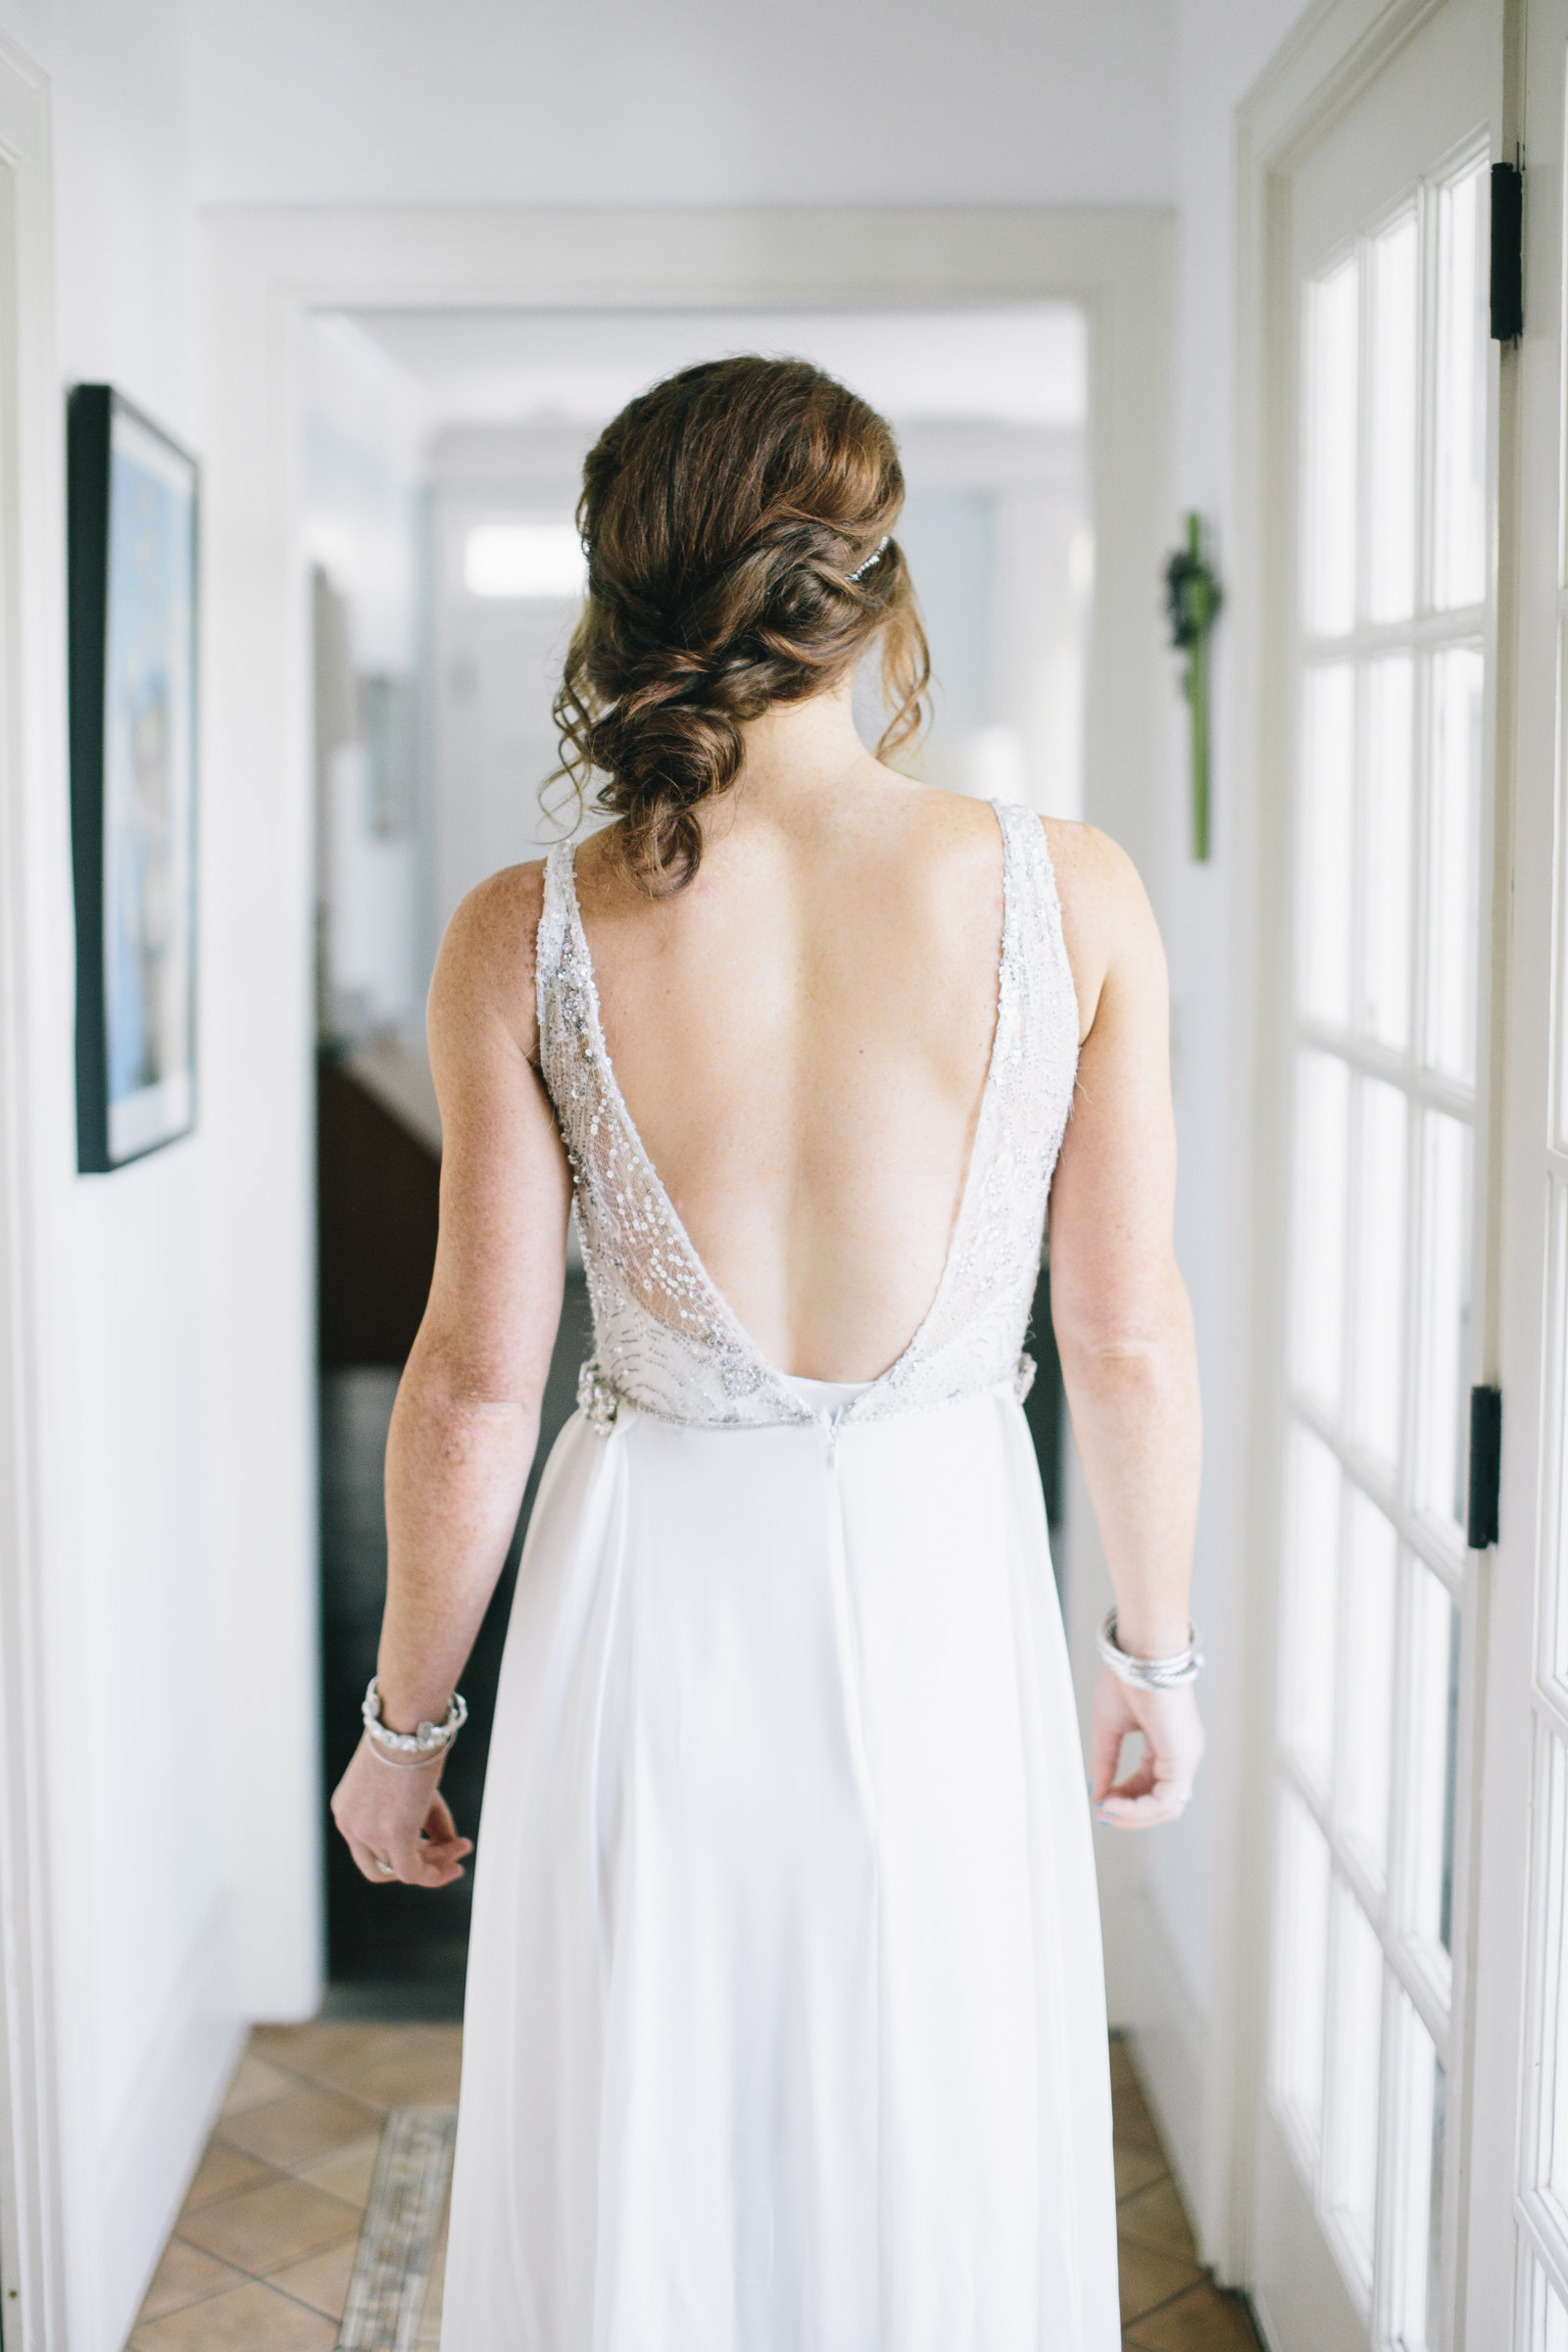 mackensey-alexander-photography-ivory-and-beau-bridal-boutique-from-this-day-forward-wedding-planning-sarah-seven-gwen-savannah-bridal-boutique-savannah-wedding-dresses-savannah-bridal-boutique-savannah-wedding-planner-savannah-weddings-17.jpg